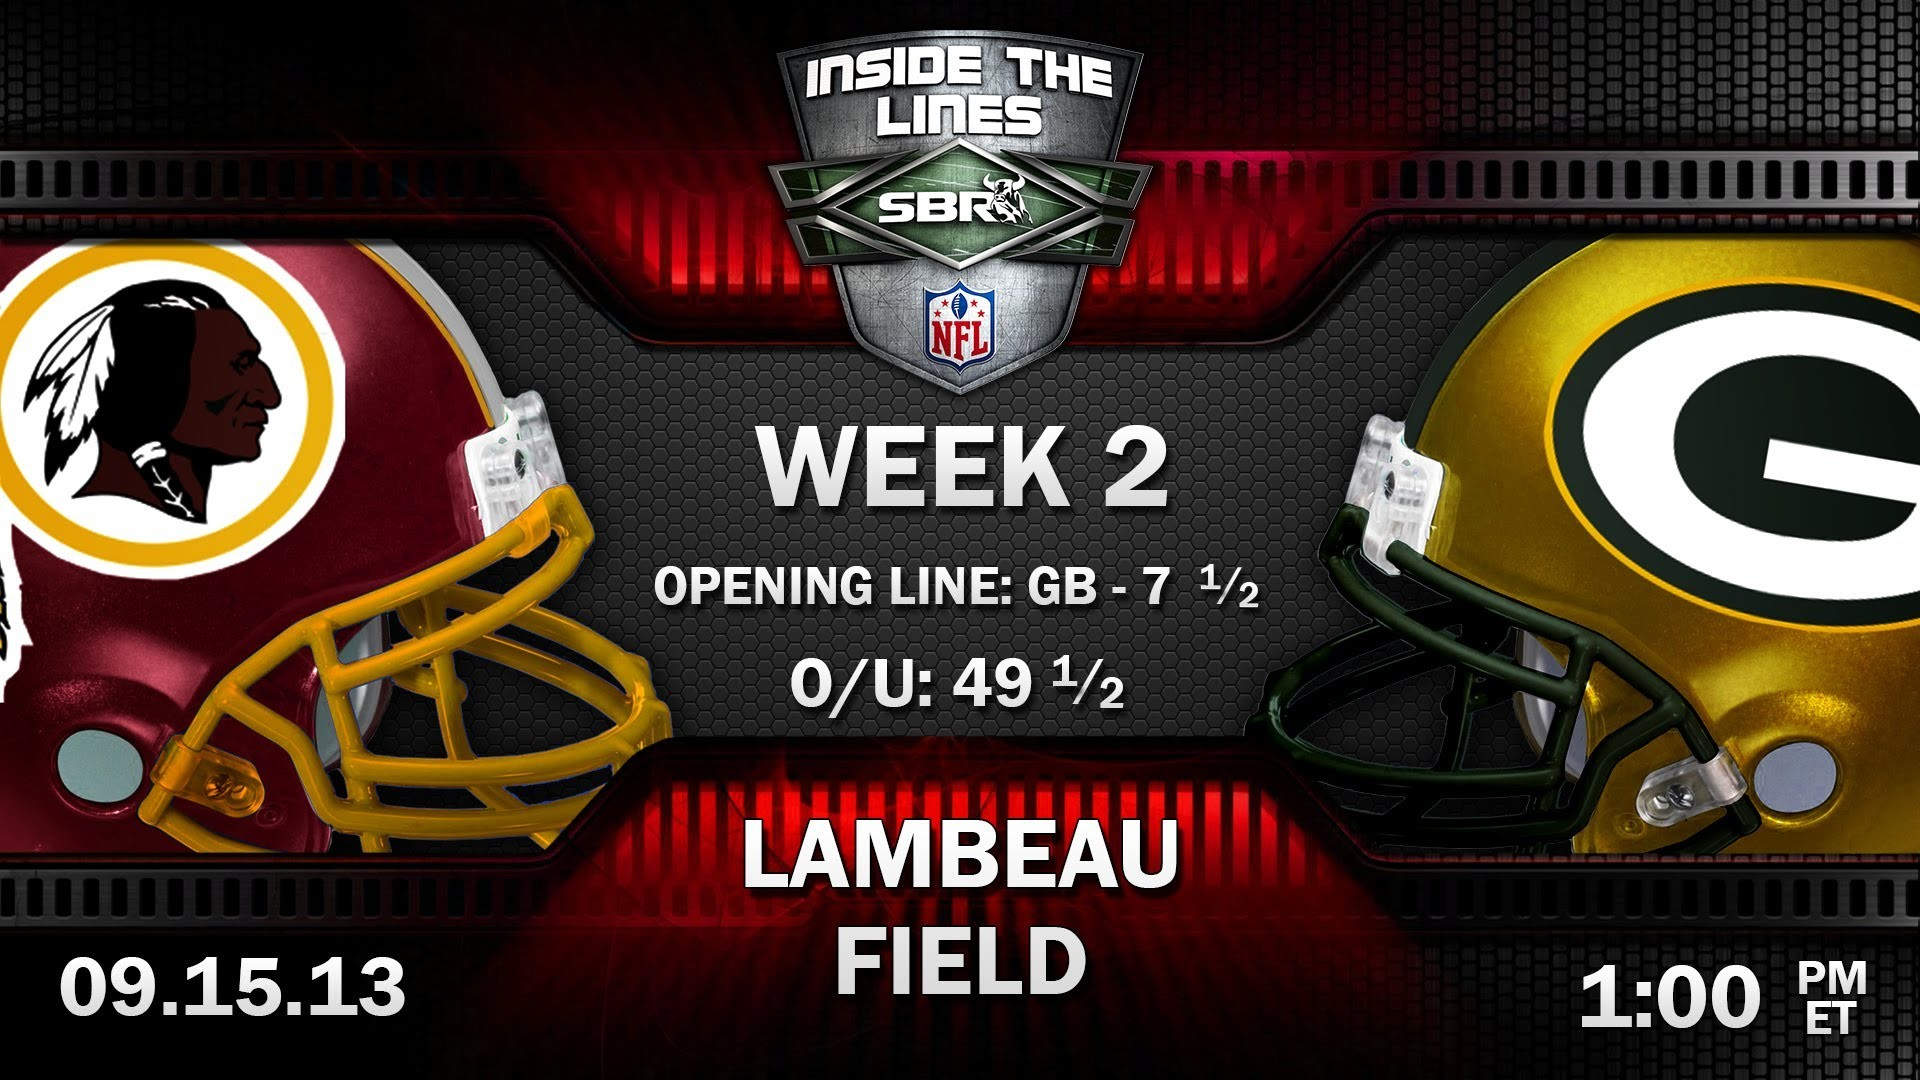 1920x1080 Washington Redskins vs Green Bay Packers NFL Week 2 Preview | 2013 NFL  Picks w/ Tony George, Loshak